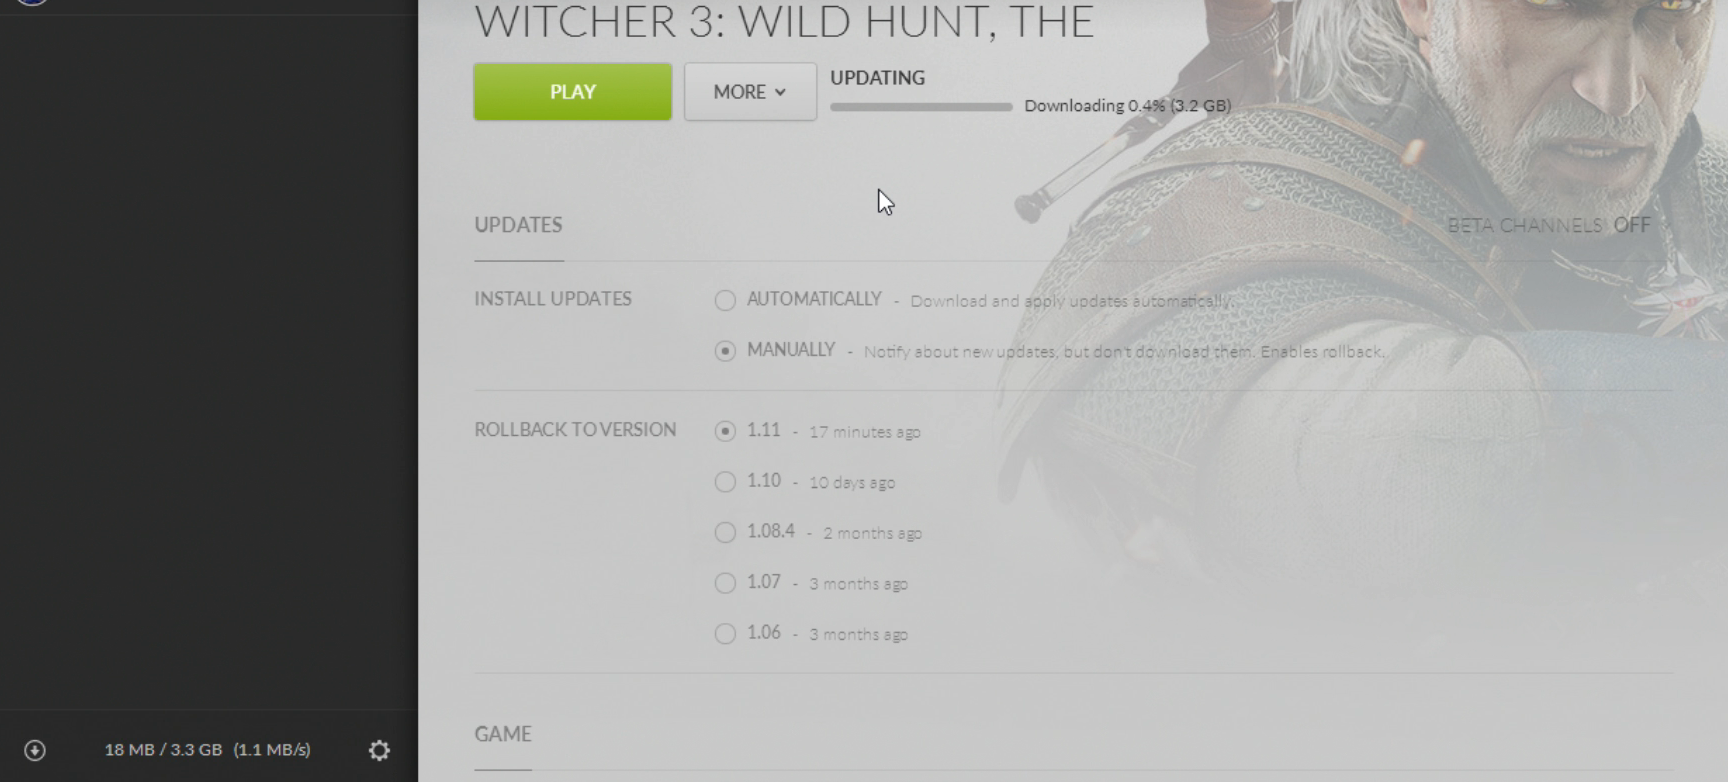 [FIXO] The Witcher 3: Wild Hunt - Página 38 Witcher-patch-1.11